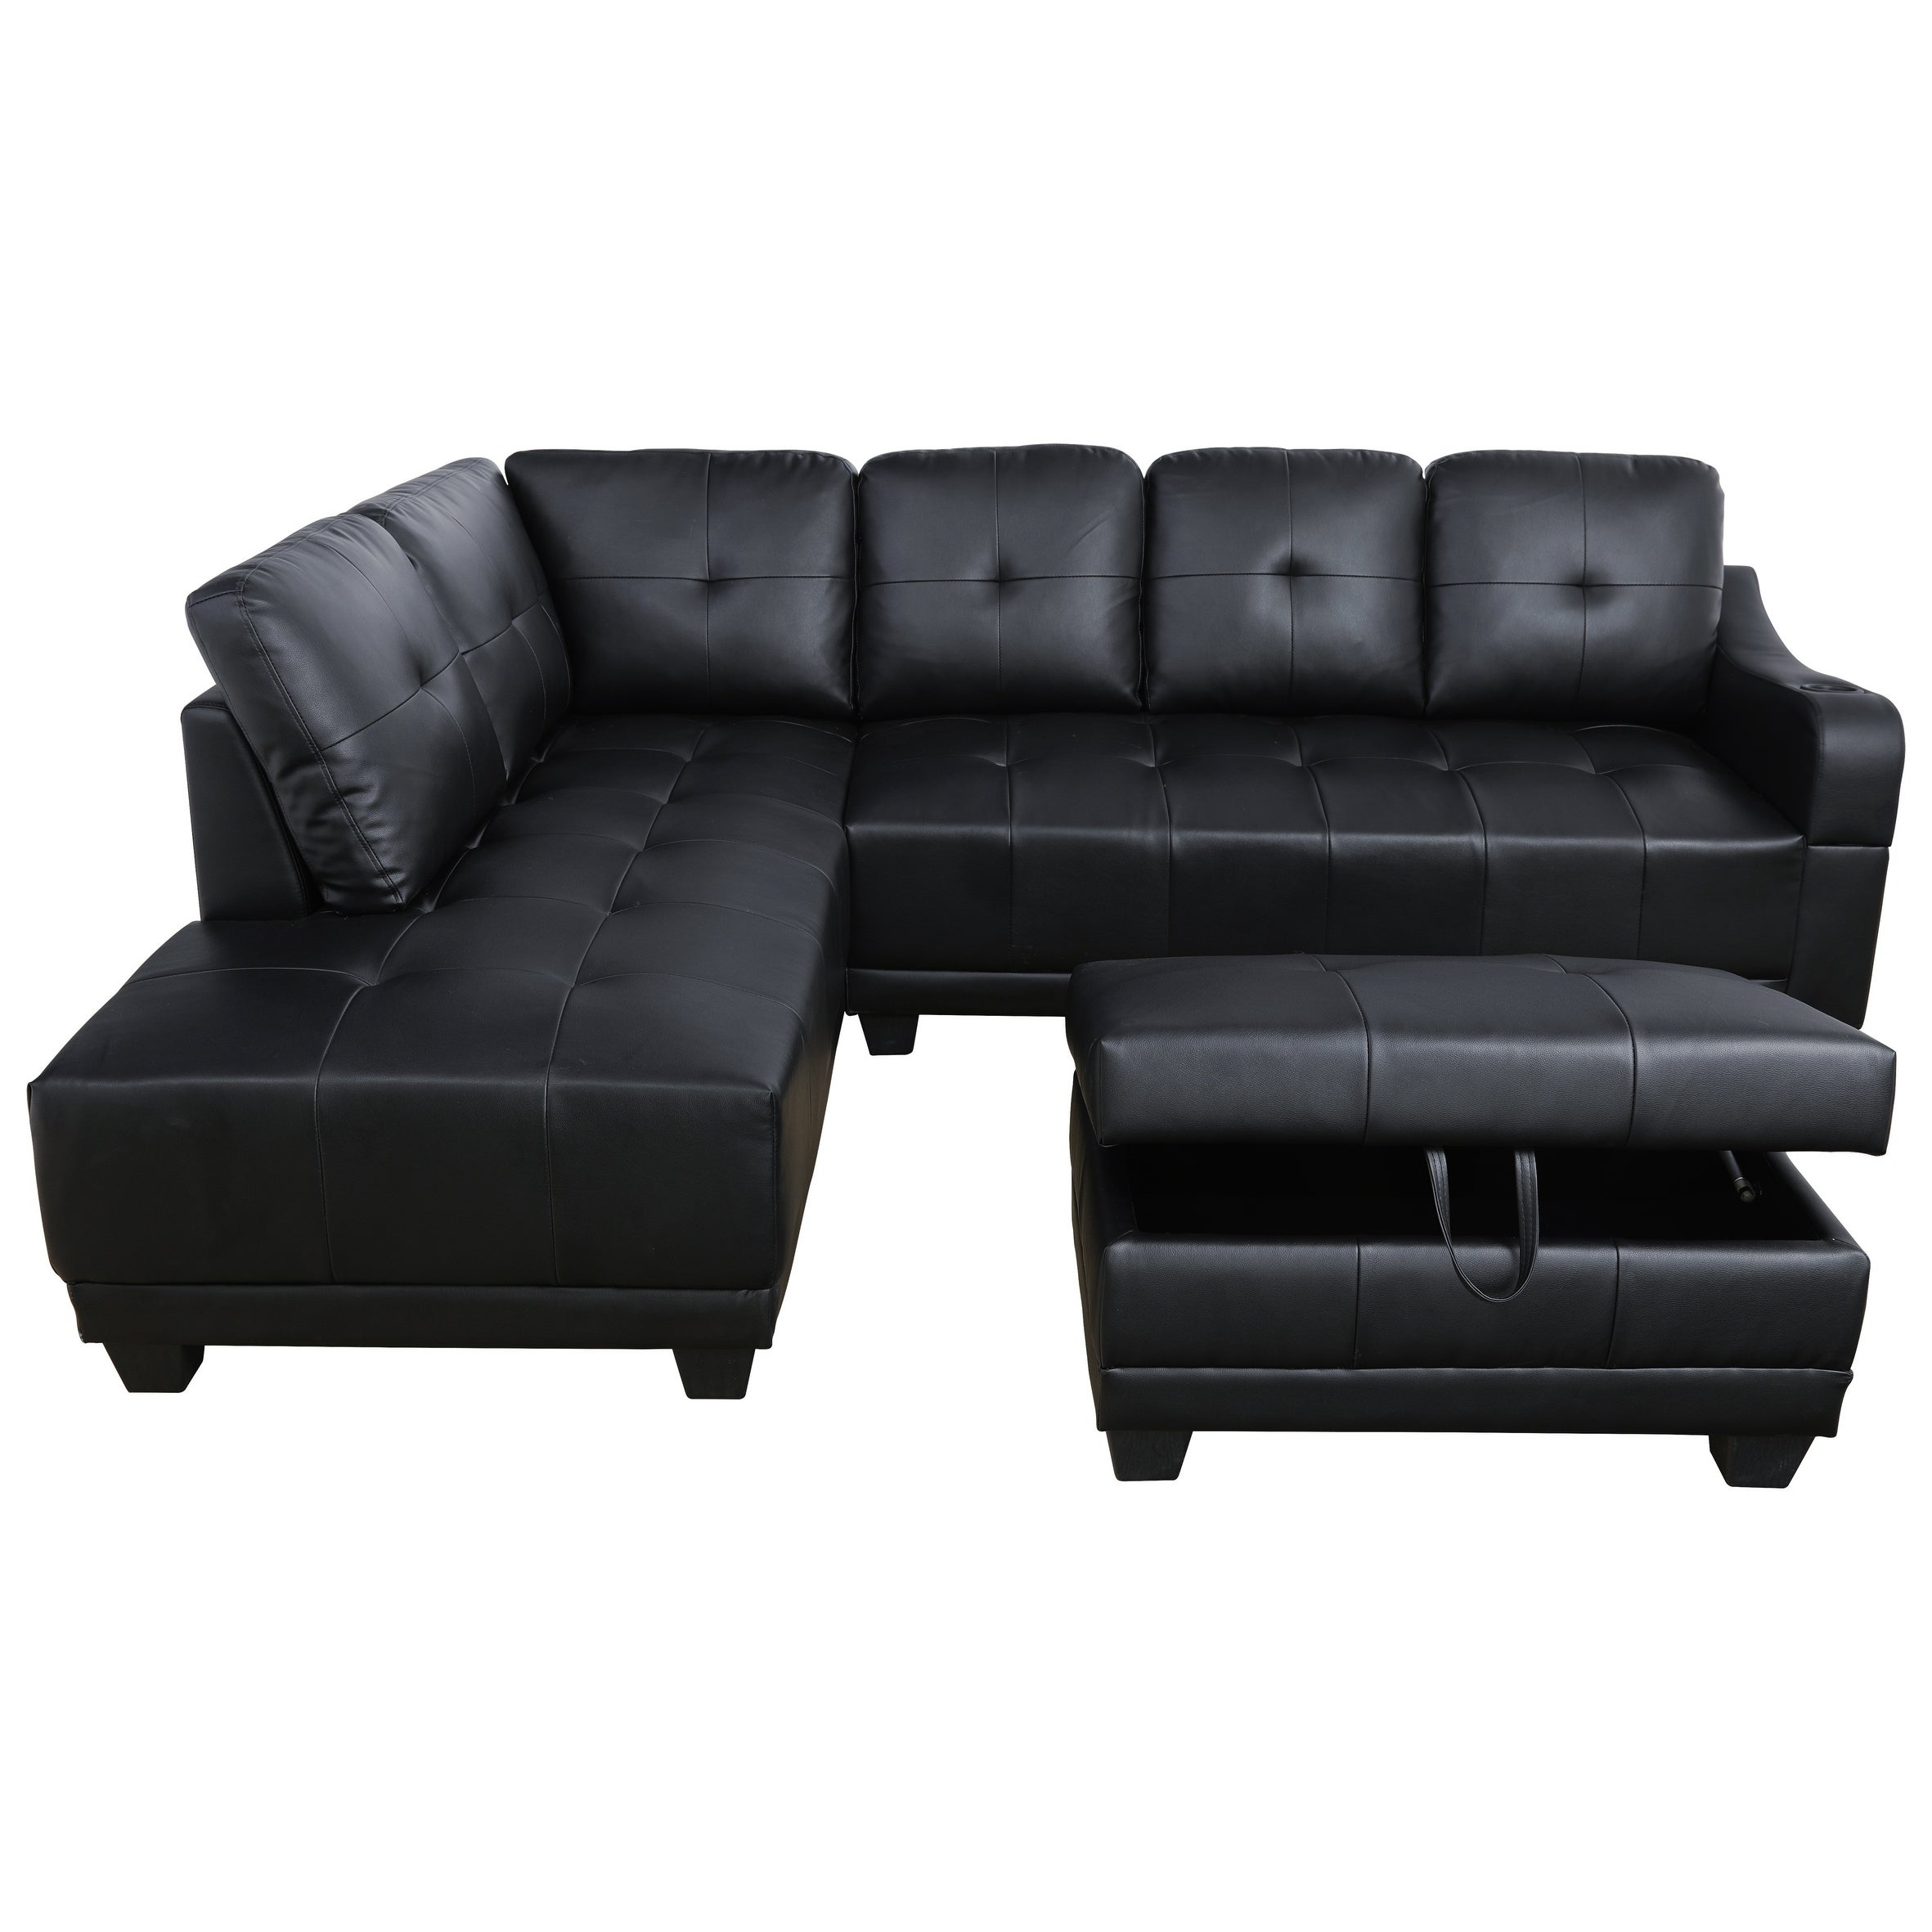 AYCP Furniture Faux Leather Sectional Sofa with Storage Ottoman and ...